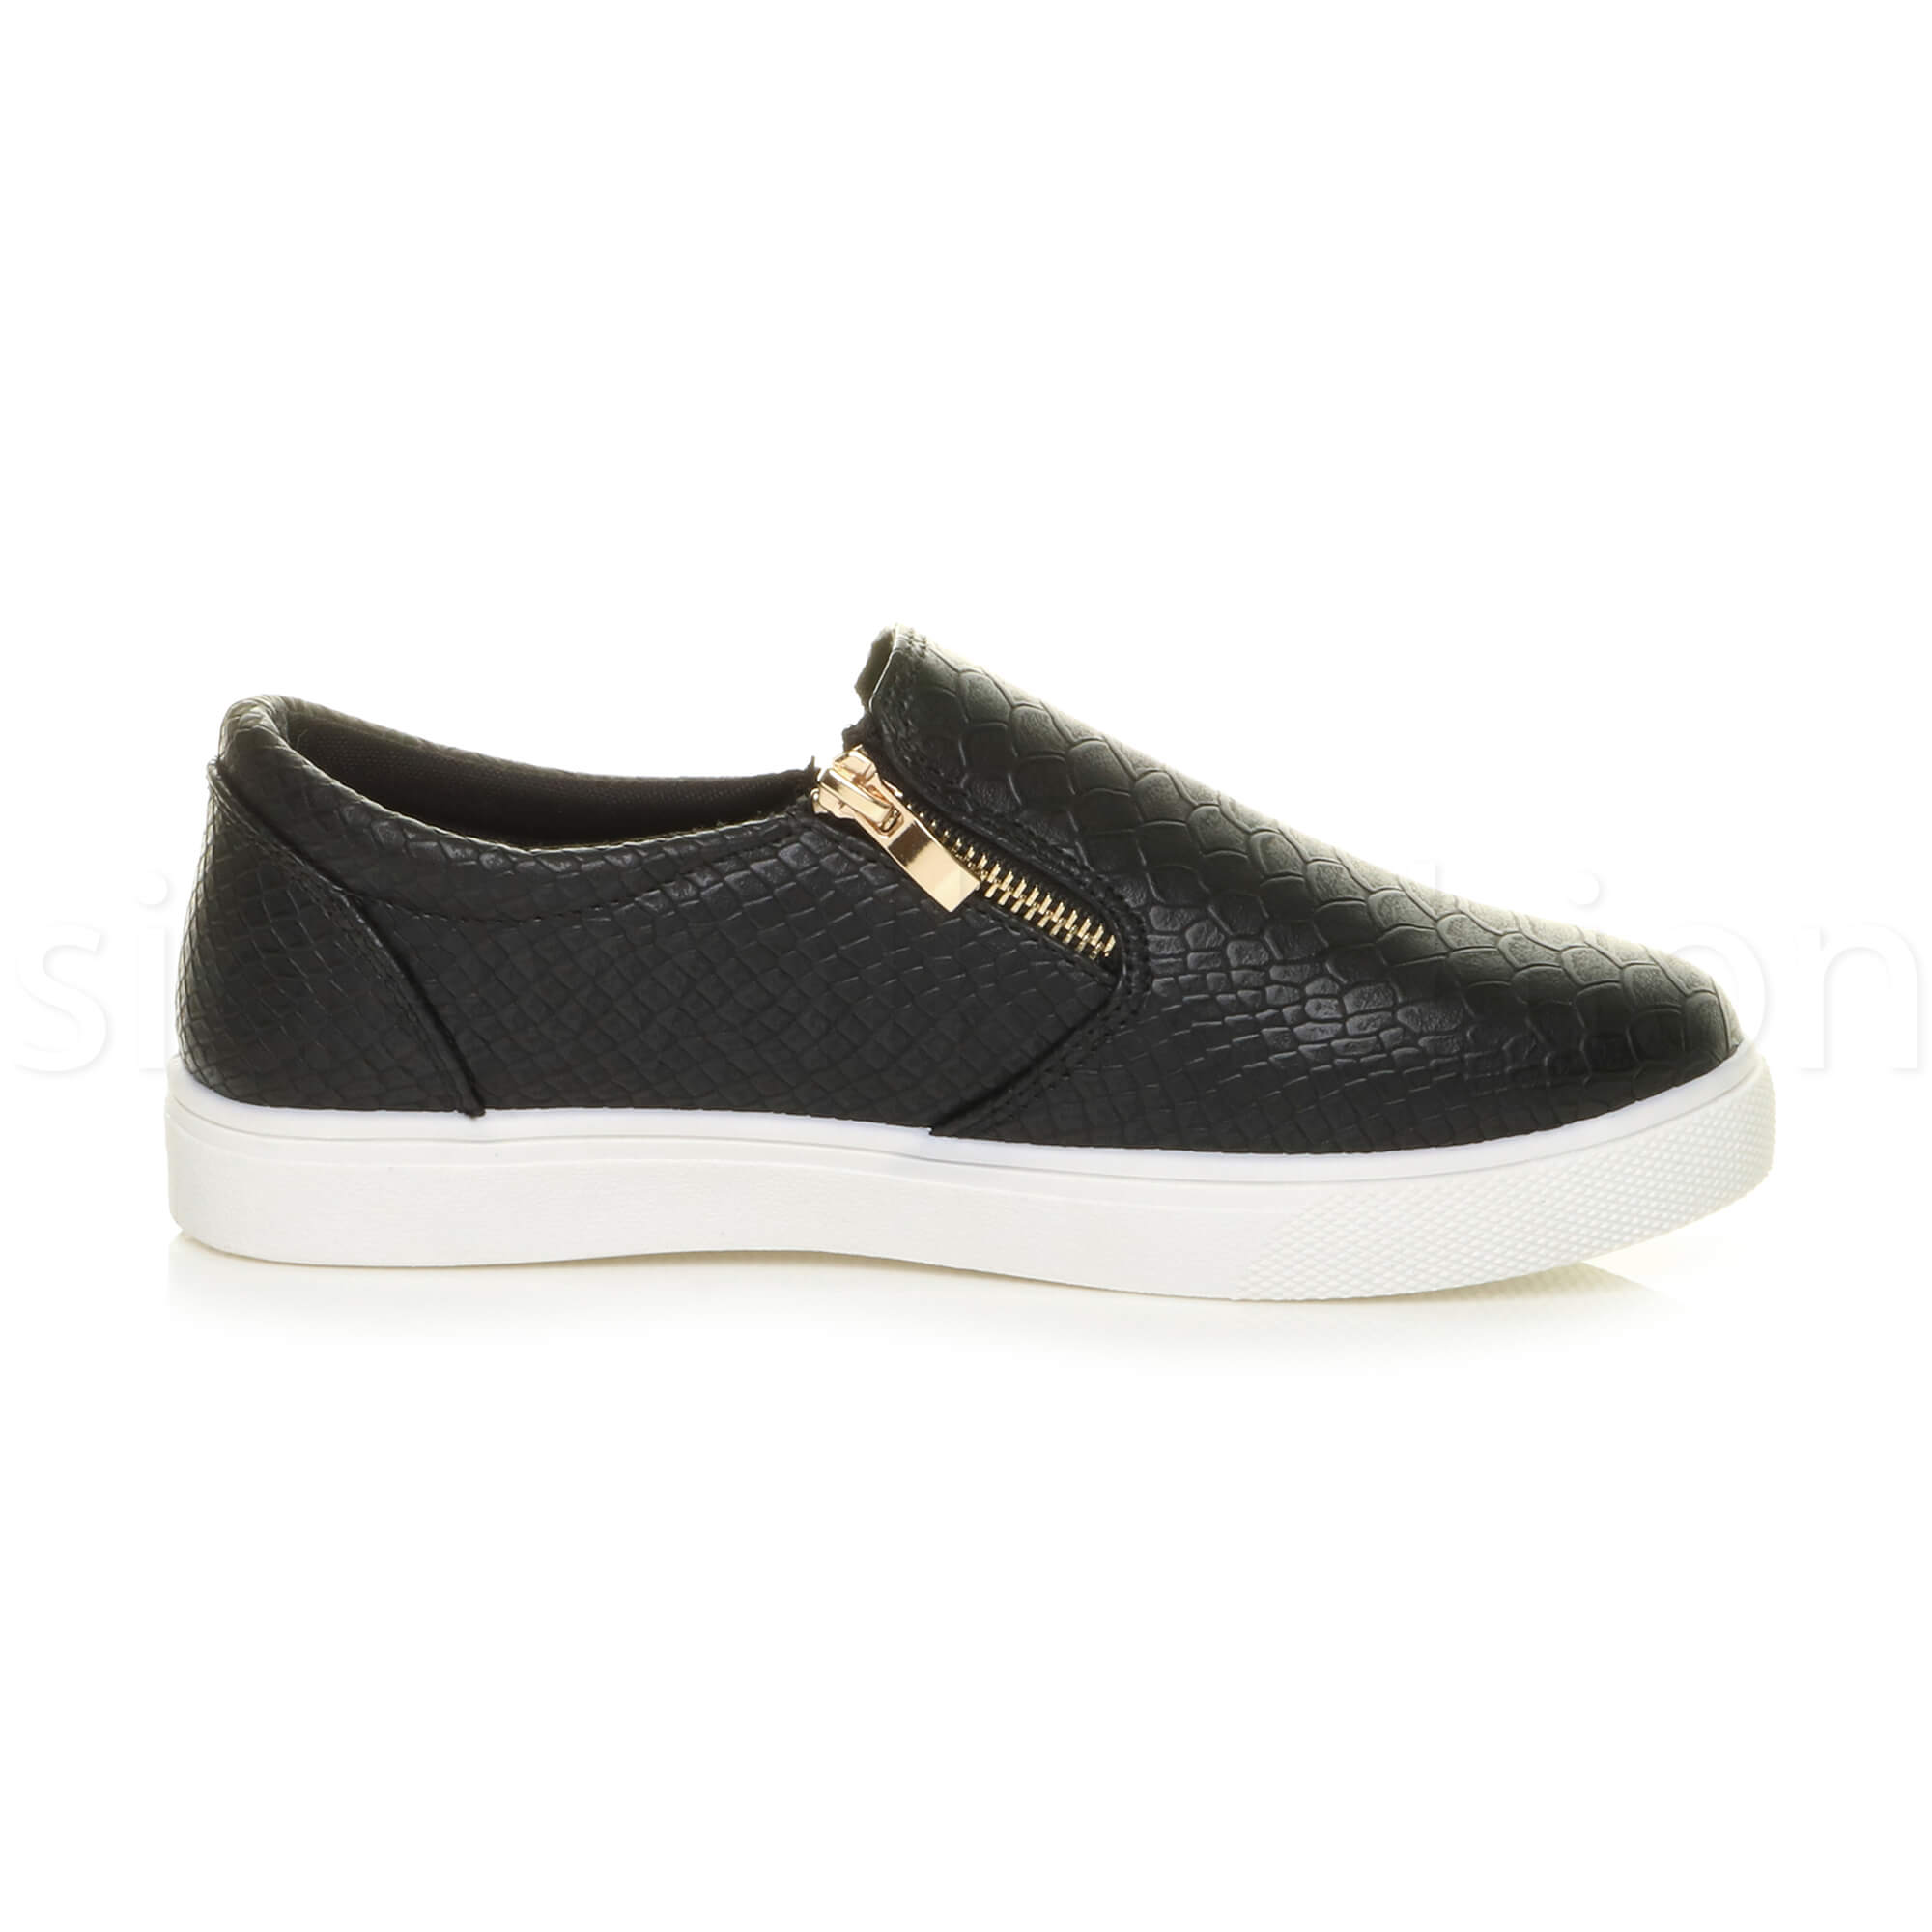 Croc Womens Slip On Shoes